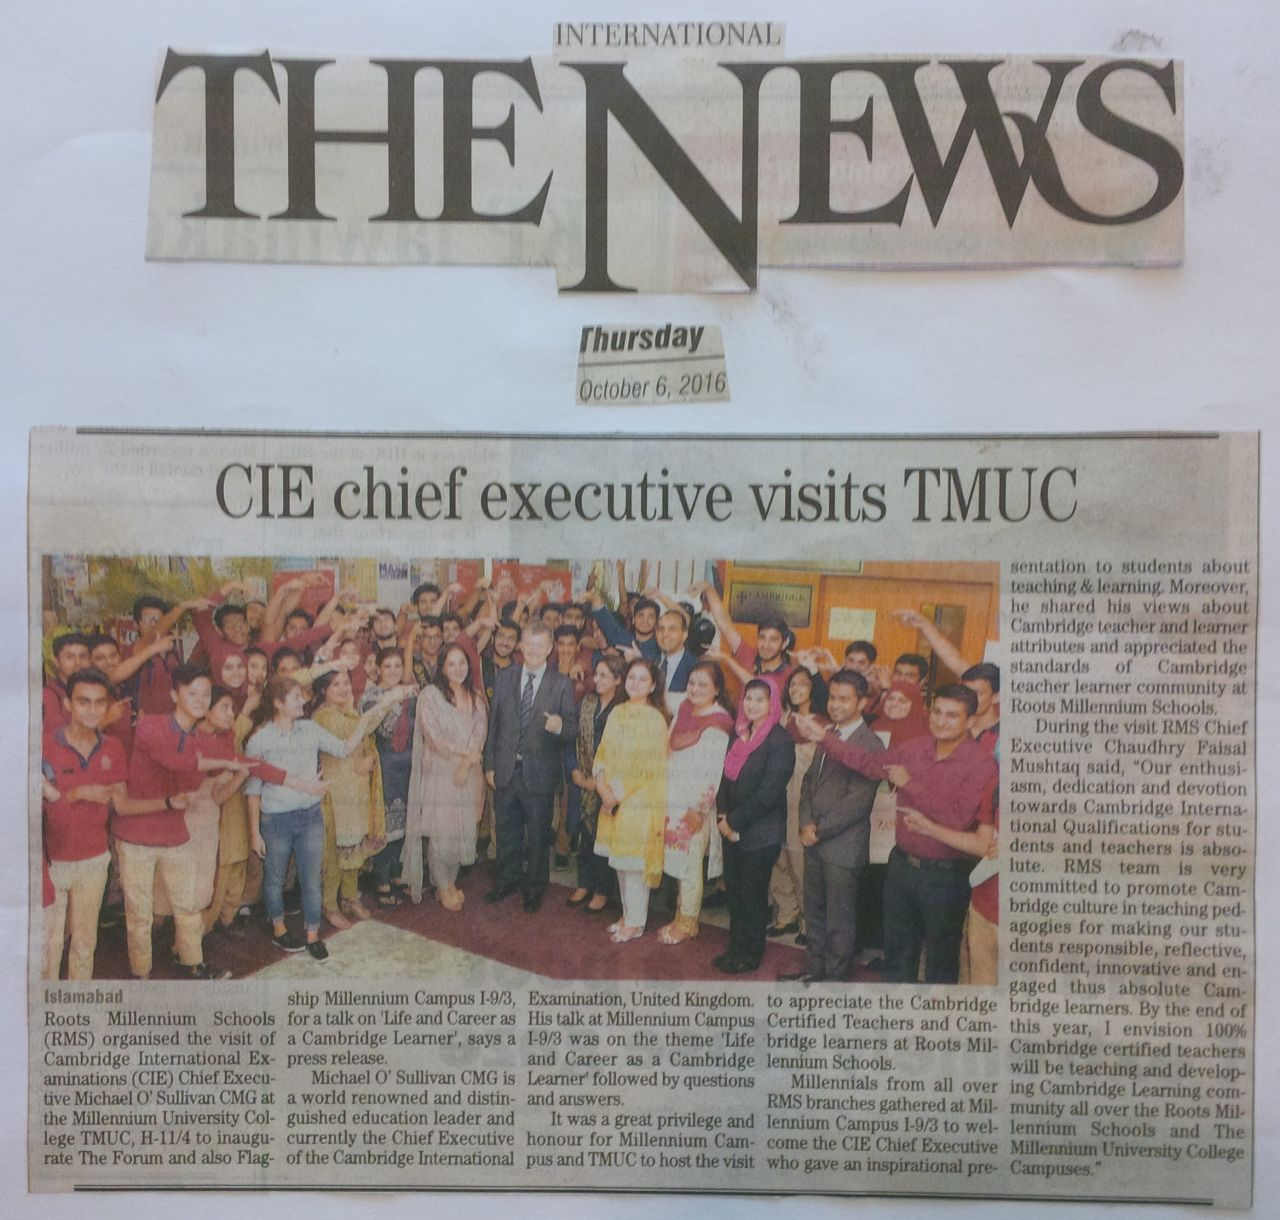 CIE chief executive visits TMUC